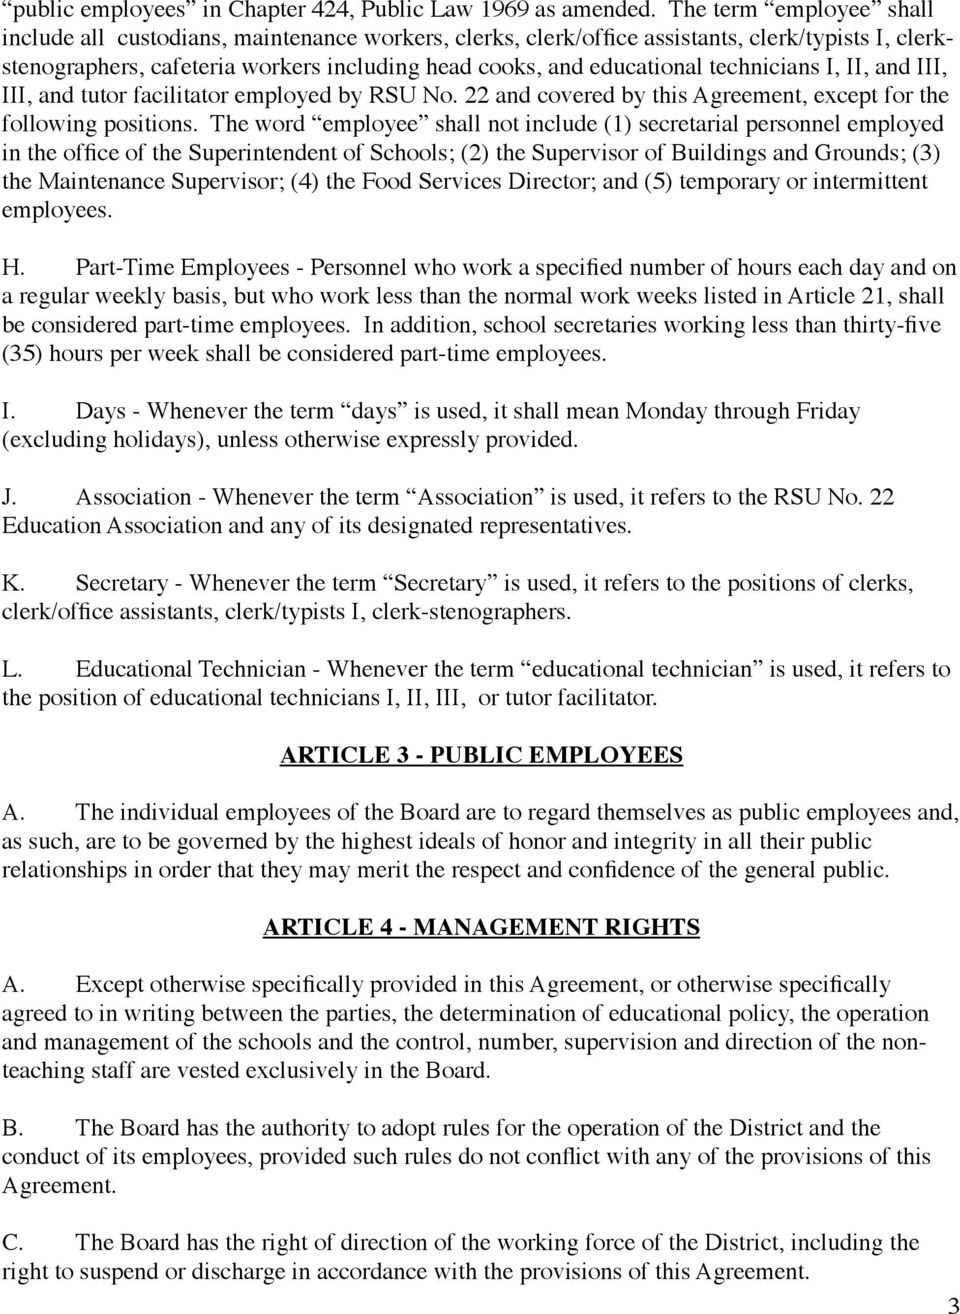 technicians I, II, and III, III, and tutor facilitator employed by RSU No. 22 and covered by this Agreement, except for the following positions.